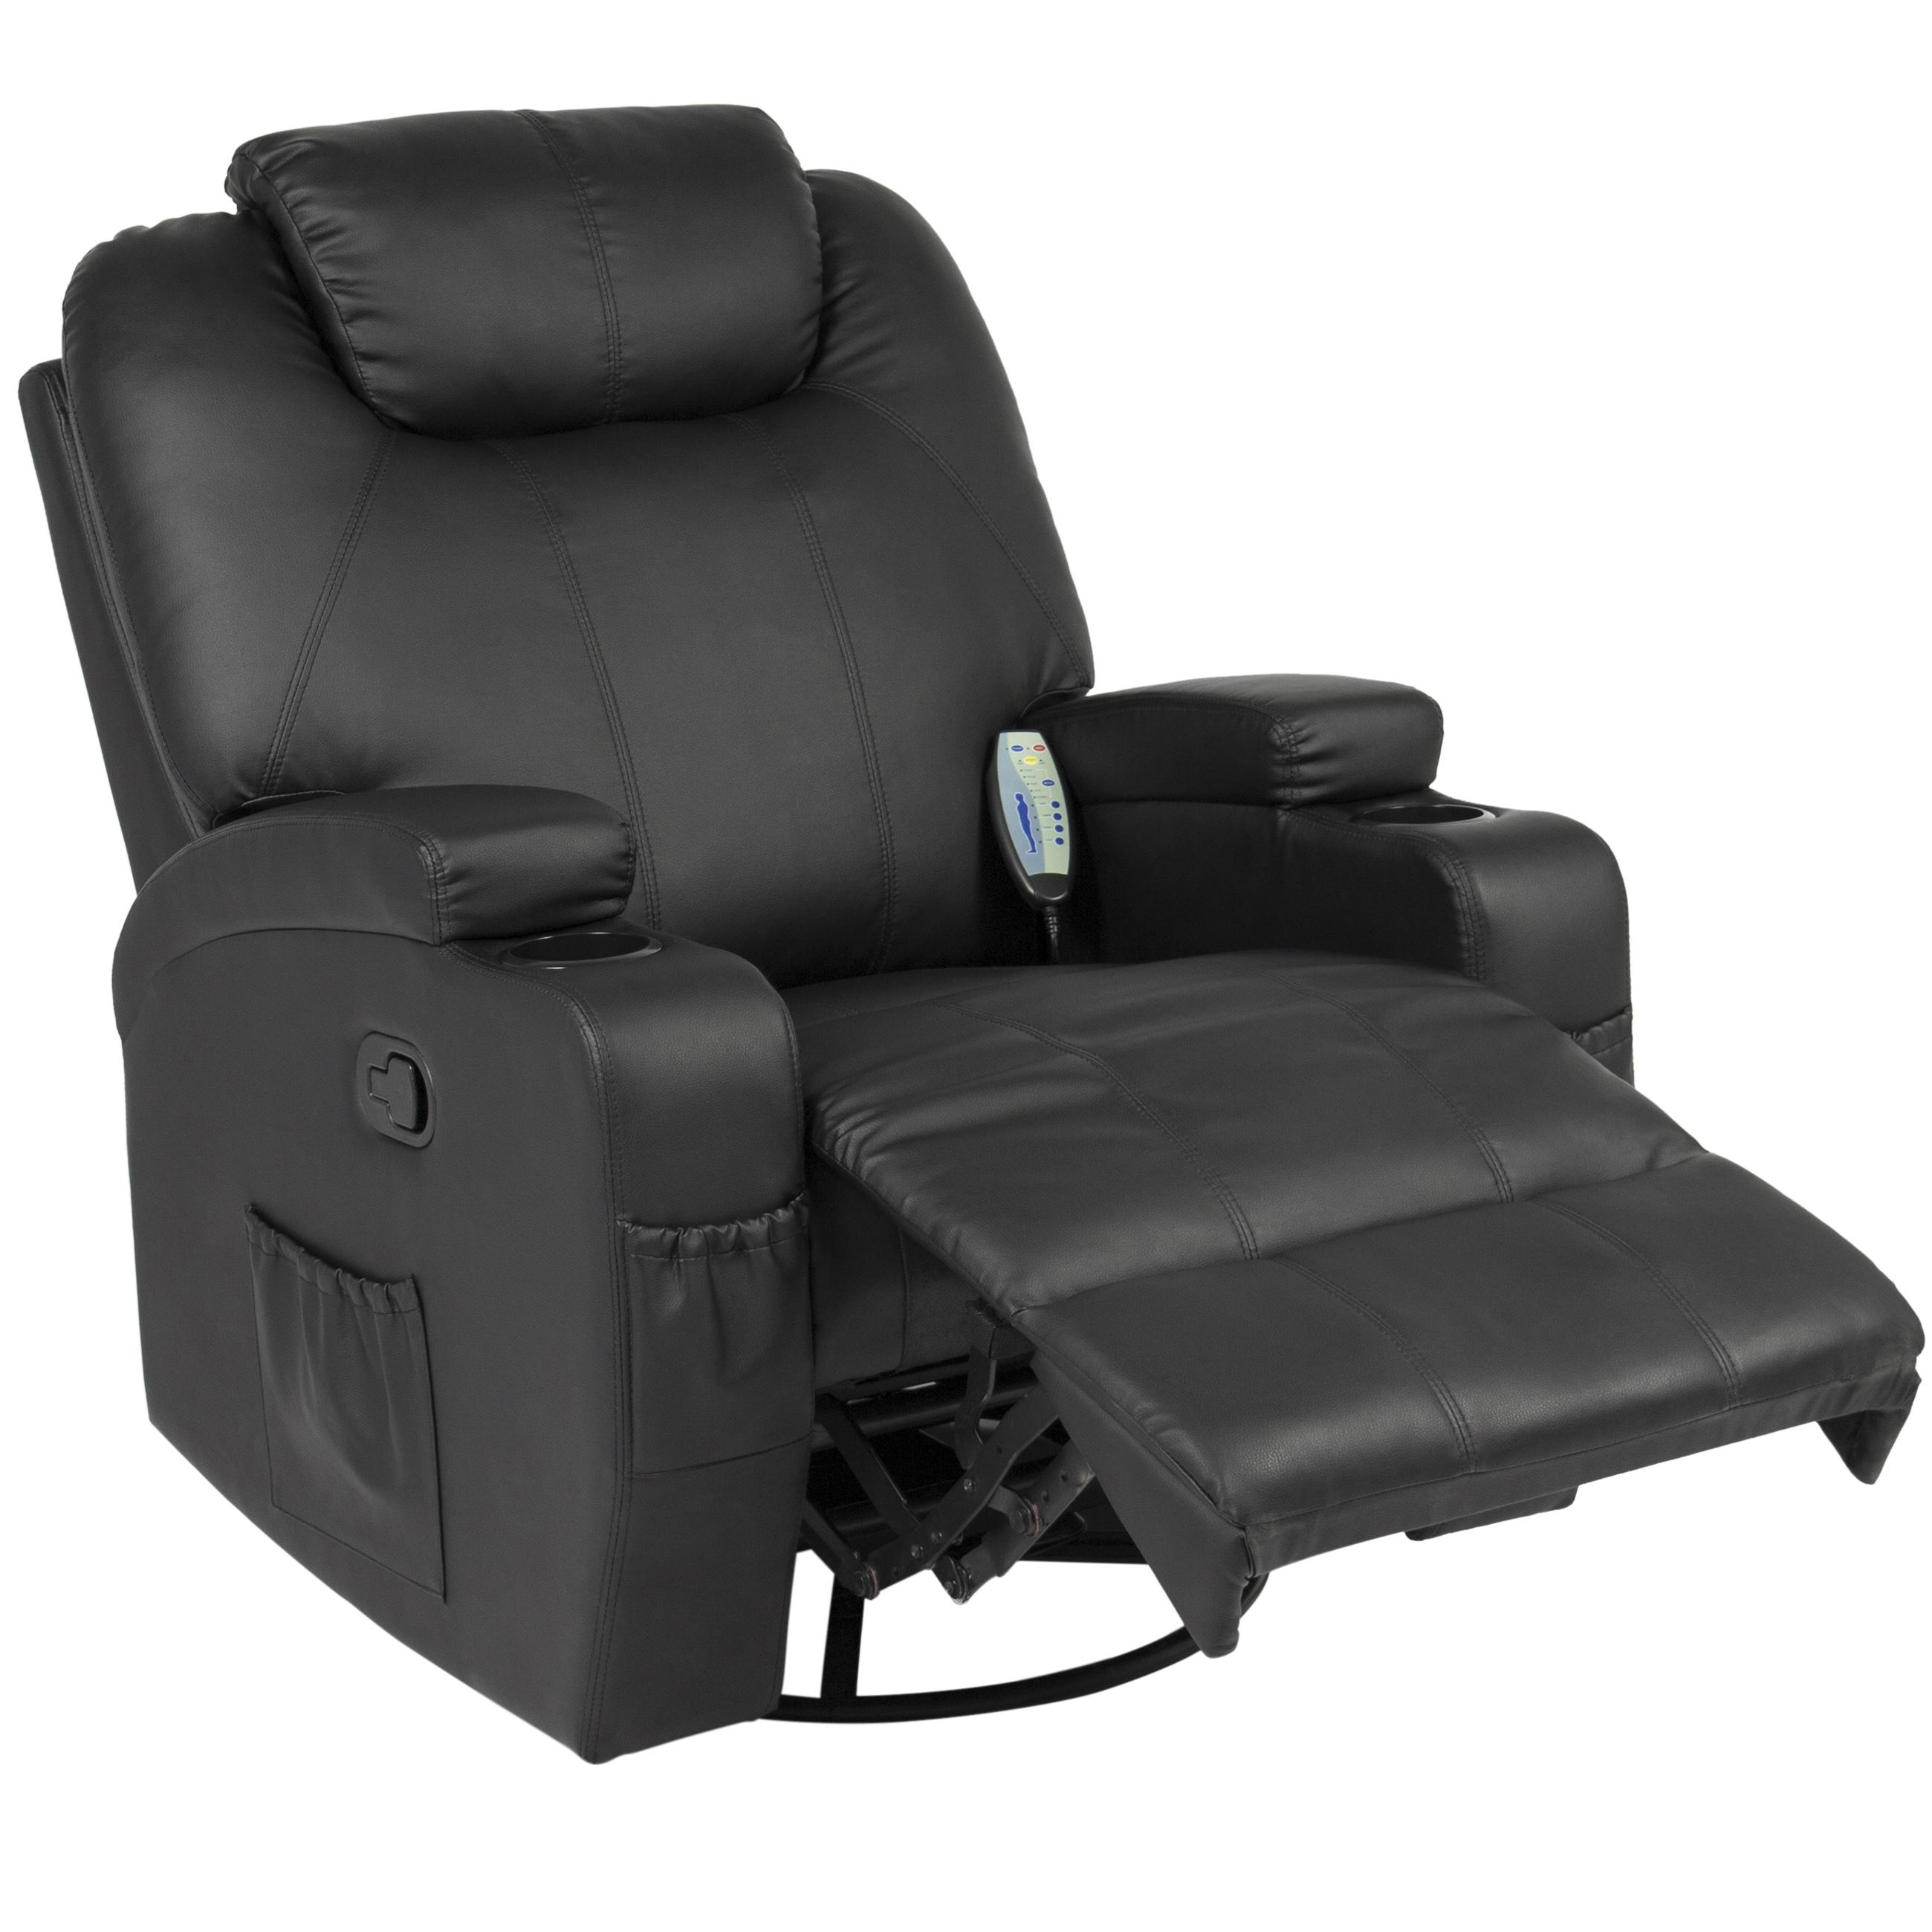 Best Choice Products Executive Swivel Massage Recliner W/ Control Intended For Recliner Sofa Chairs (Image 3 of 20)